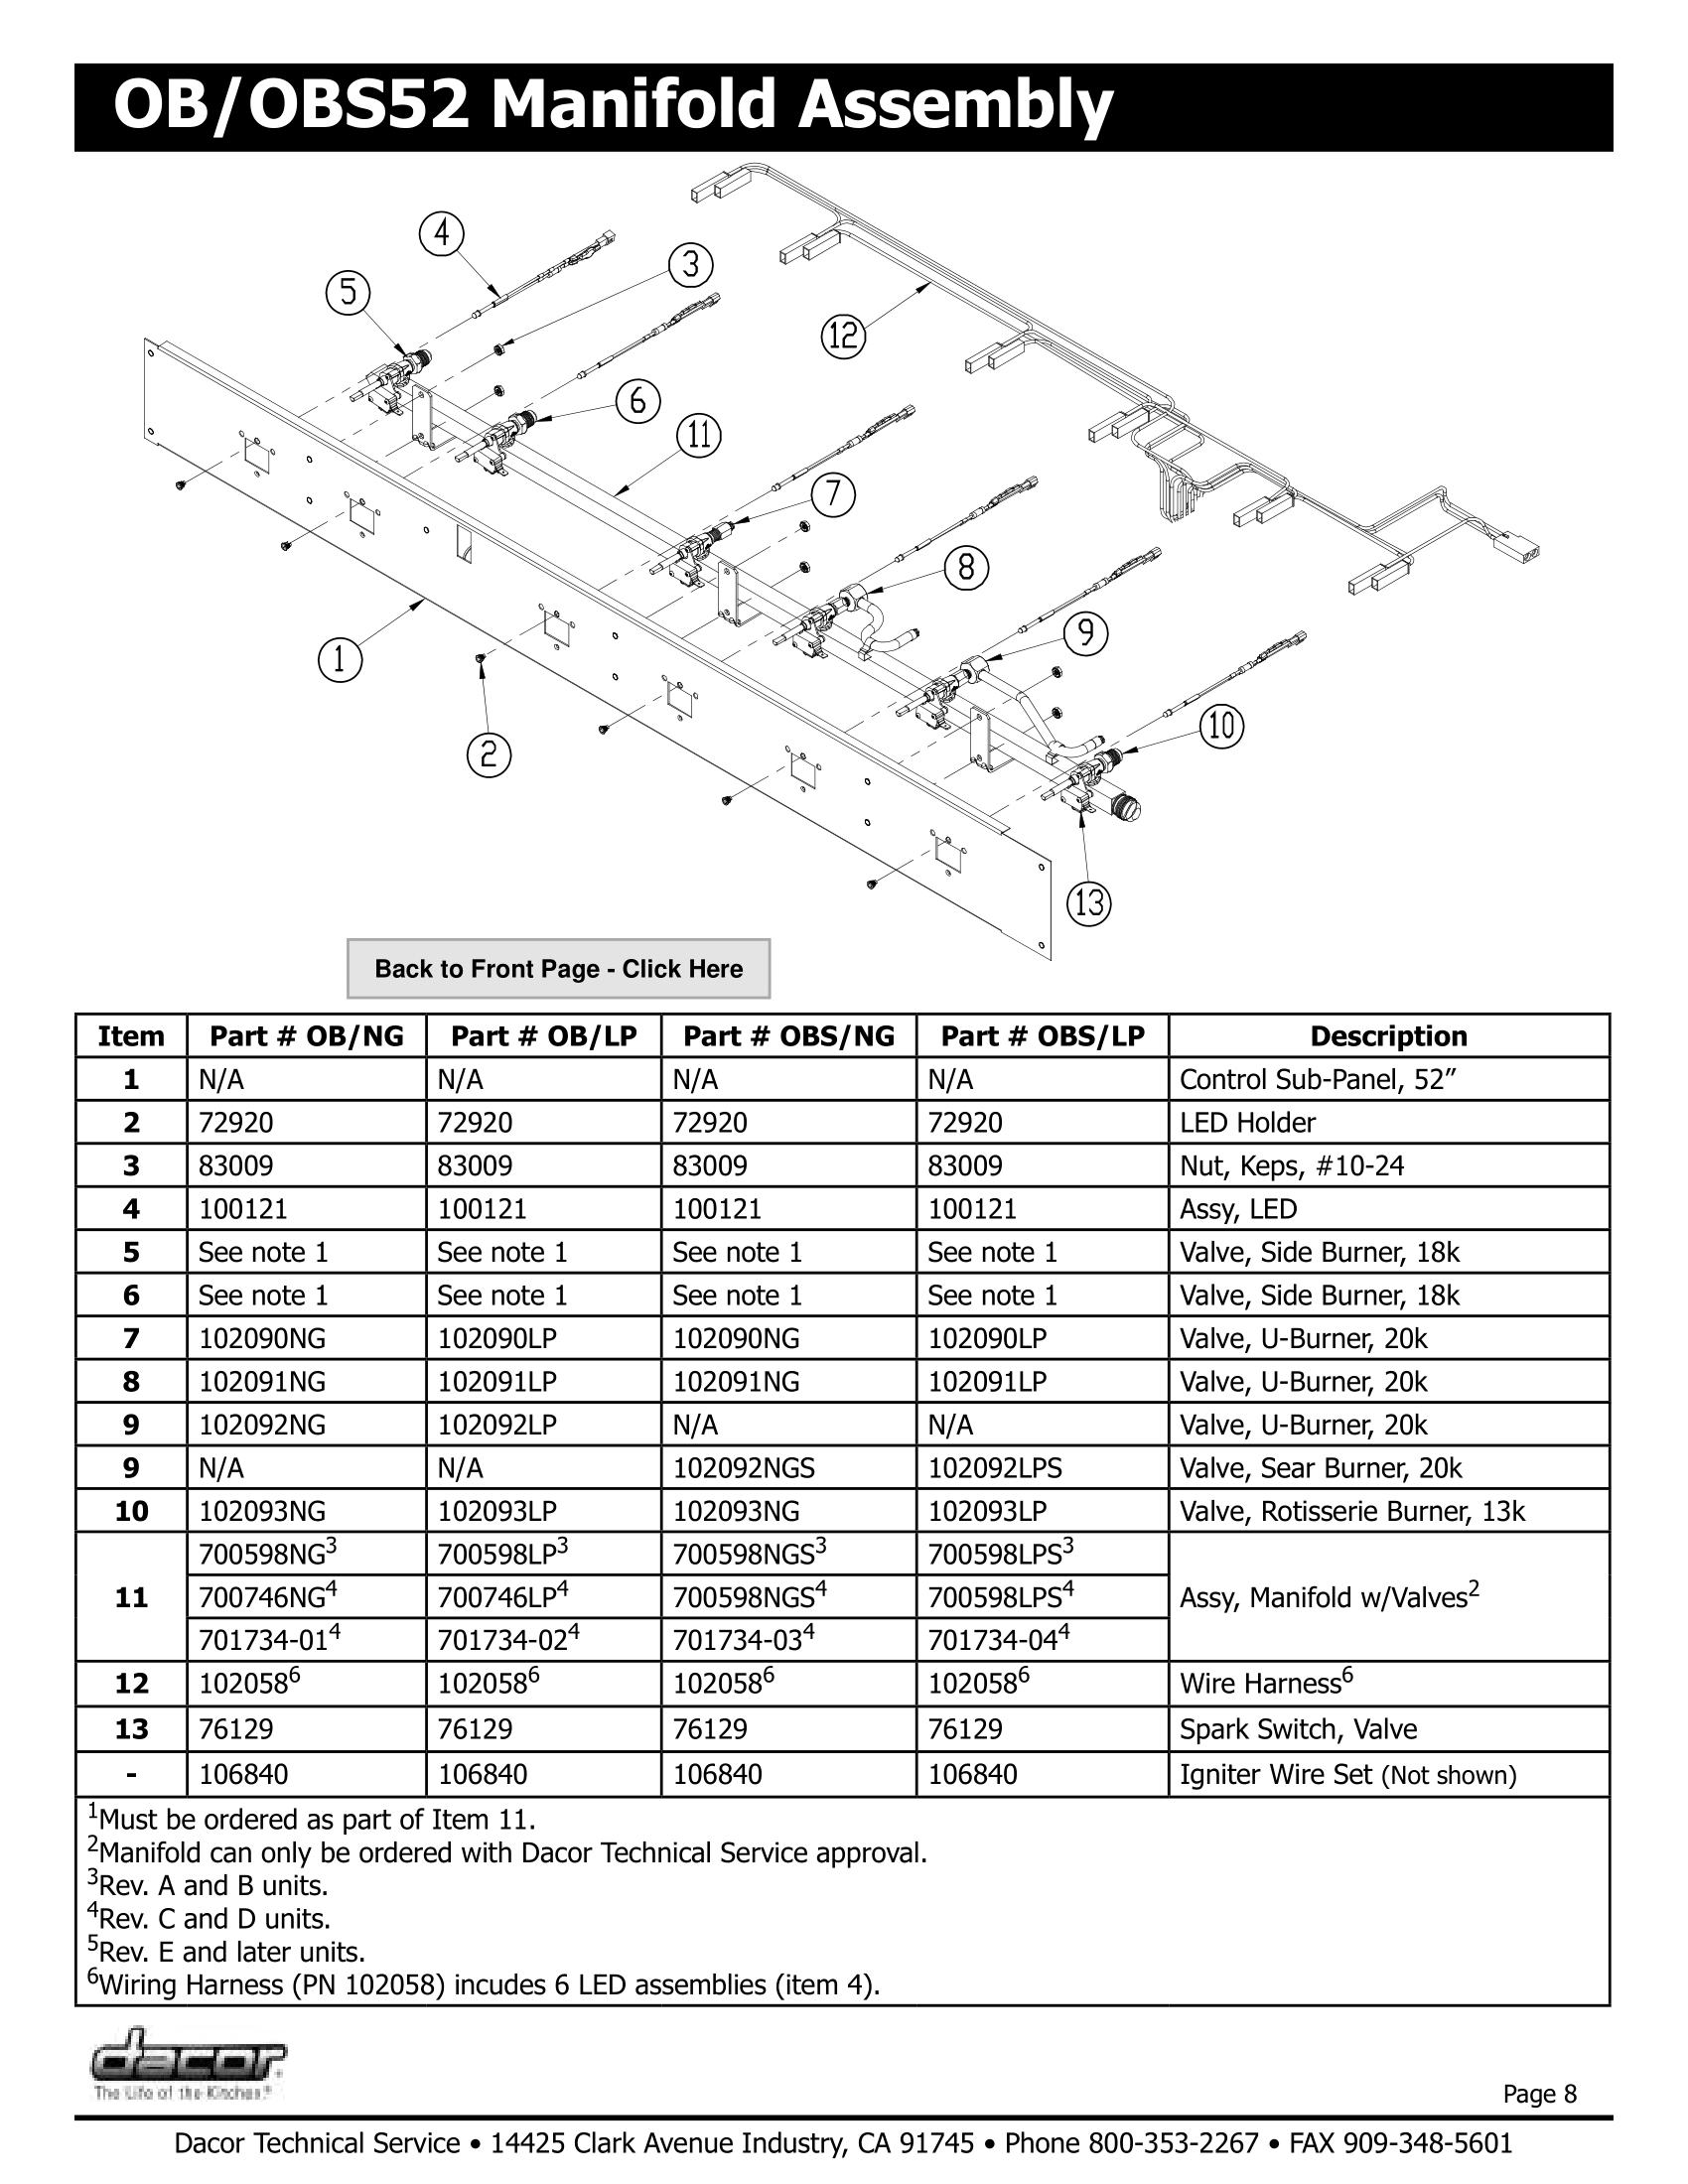 Dacor OBS52 Manifold Assembly Schematic